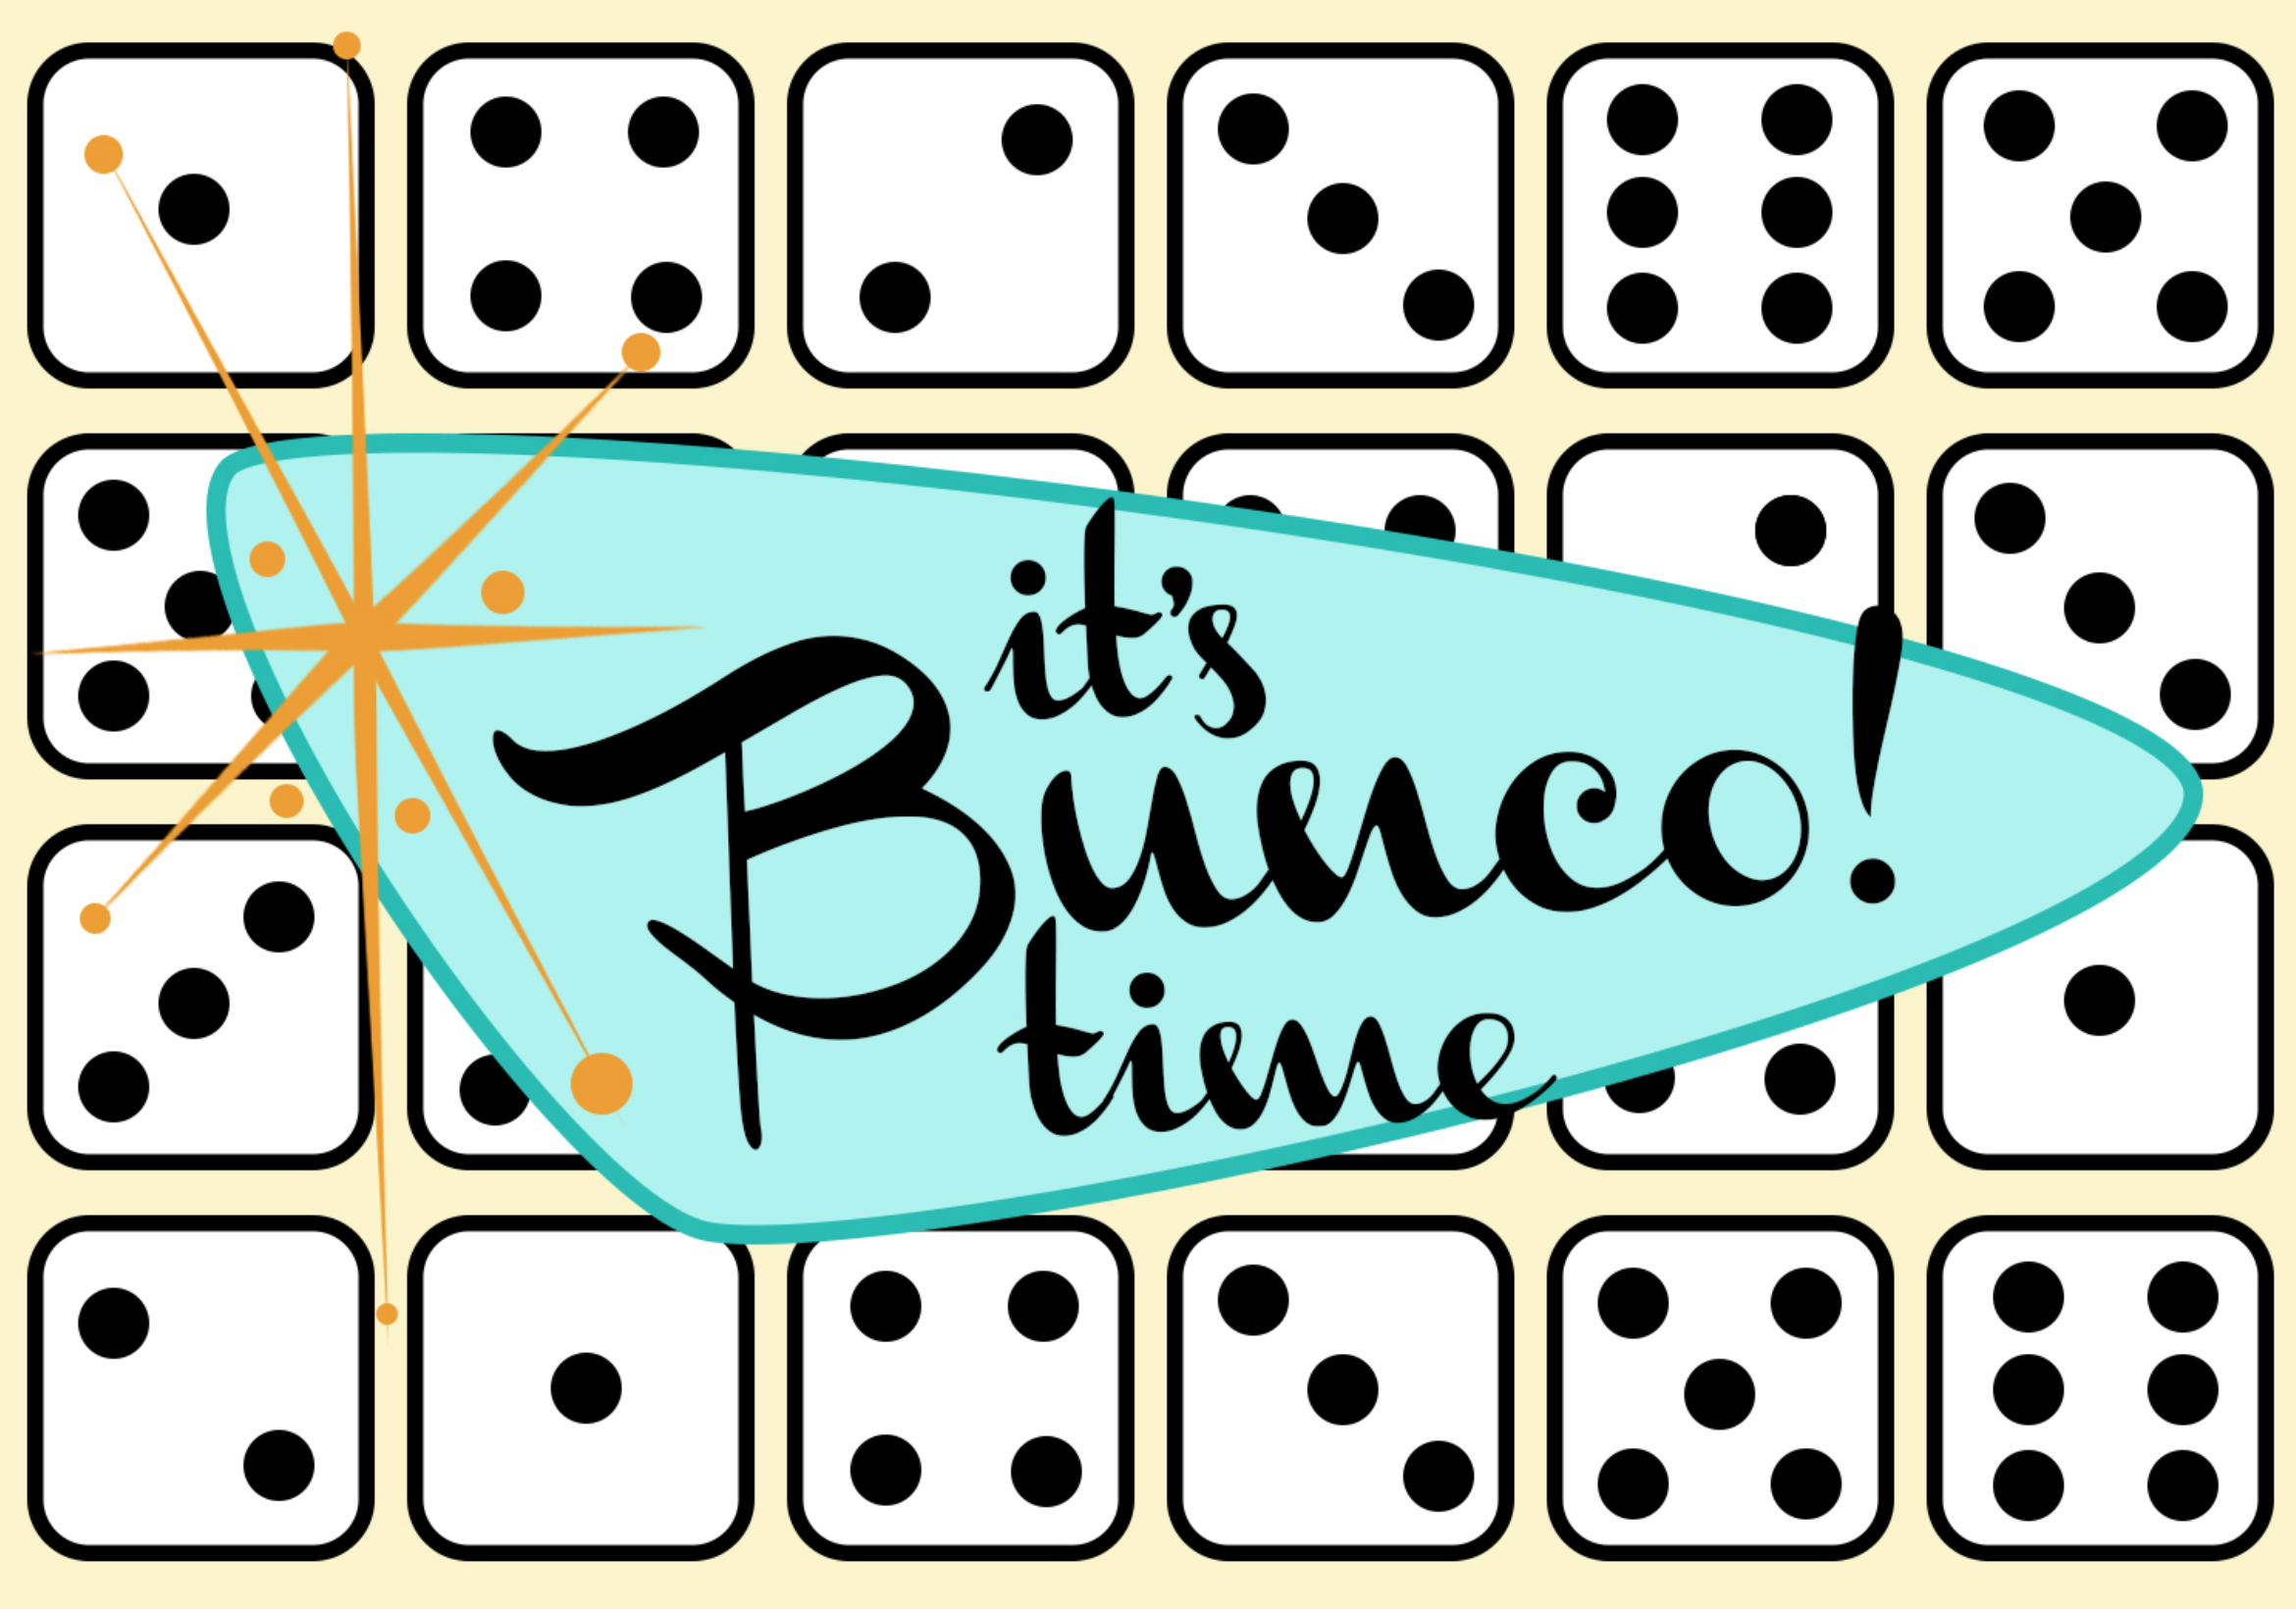 Preschool team bunco party